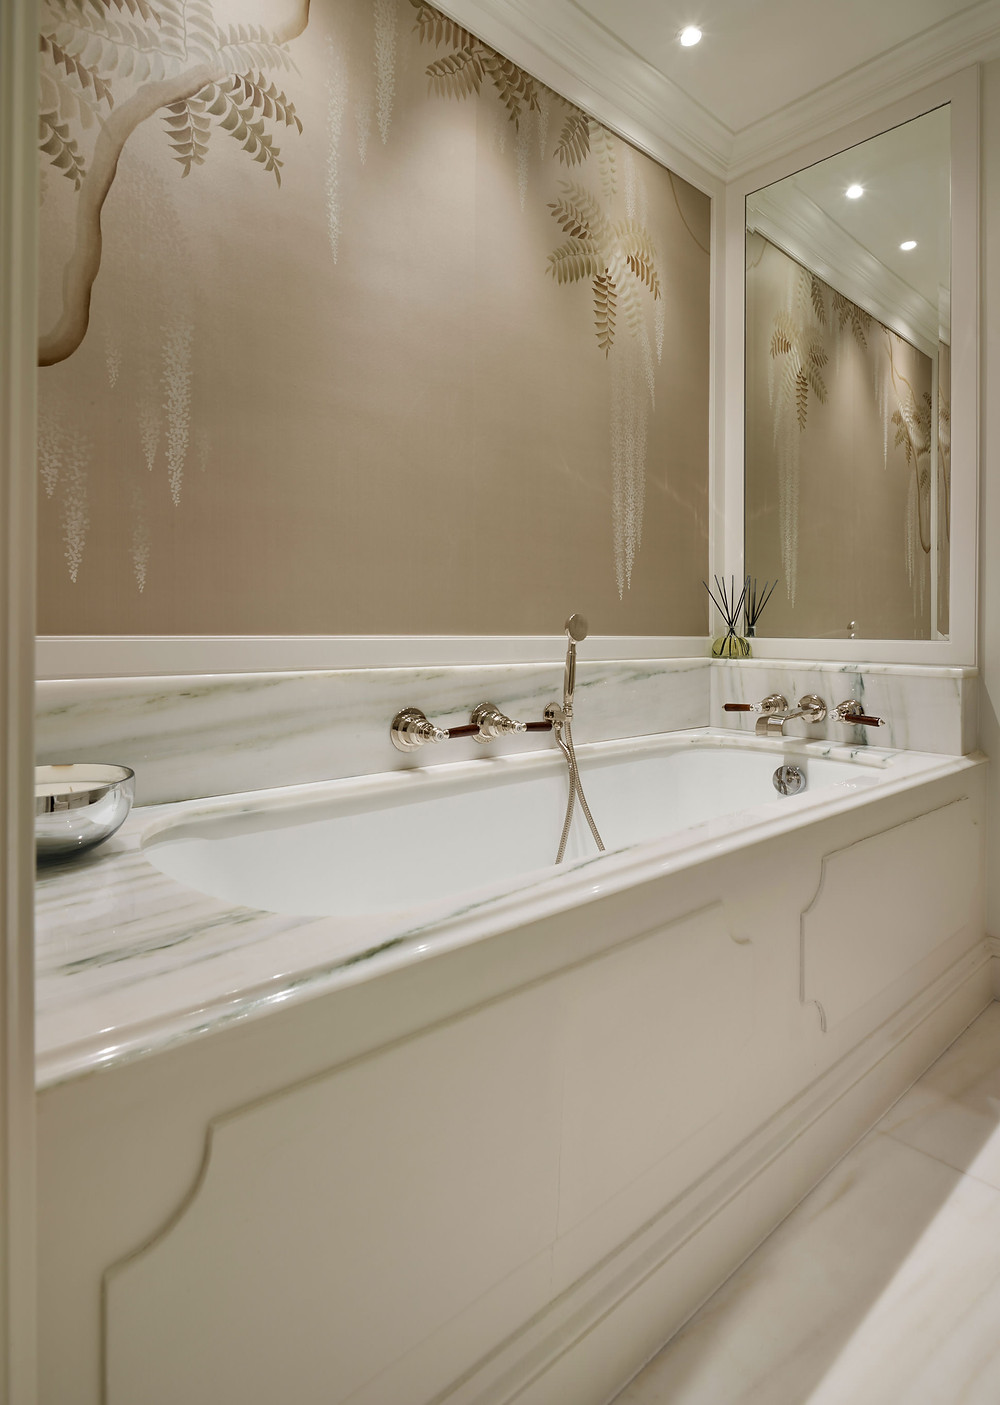 Luxury interiors: Cast iron bath with a figured marble surround